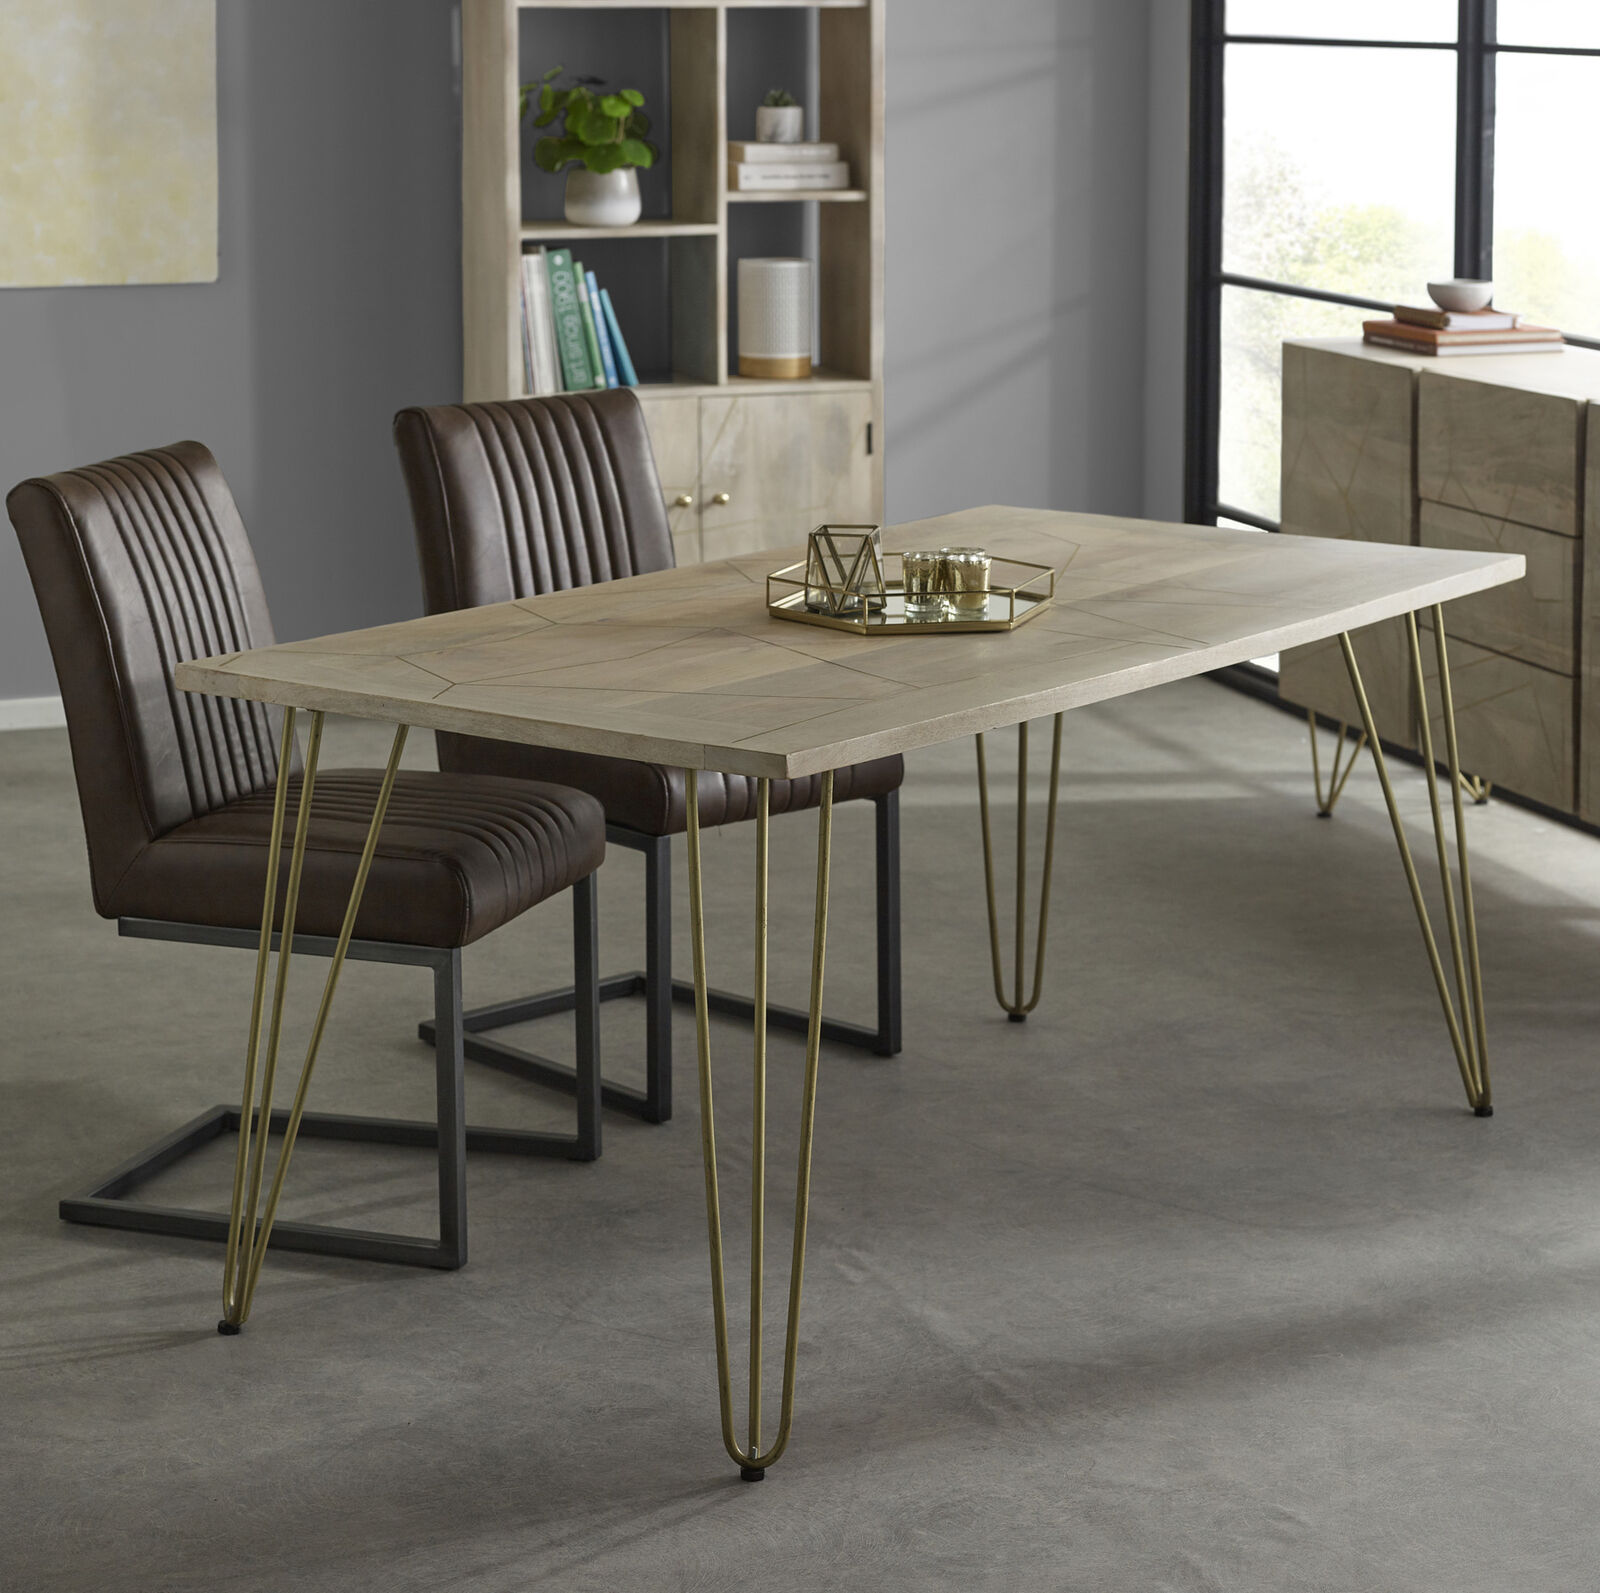 Dining Table 6 Seater Rustic Solid Mango Wood Light Gold Retro Hairpin Legs Ebay